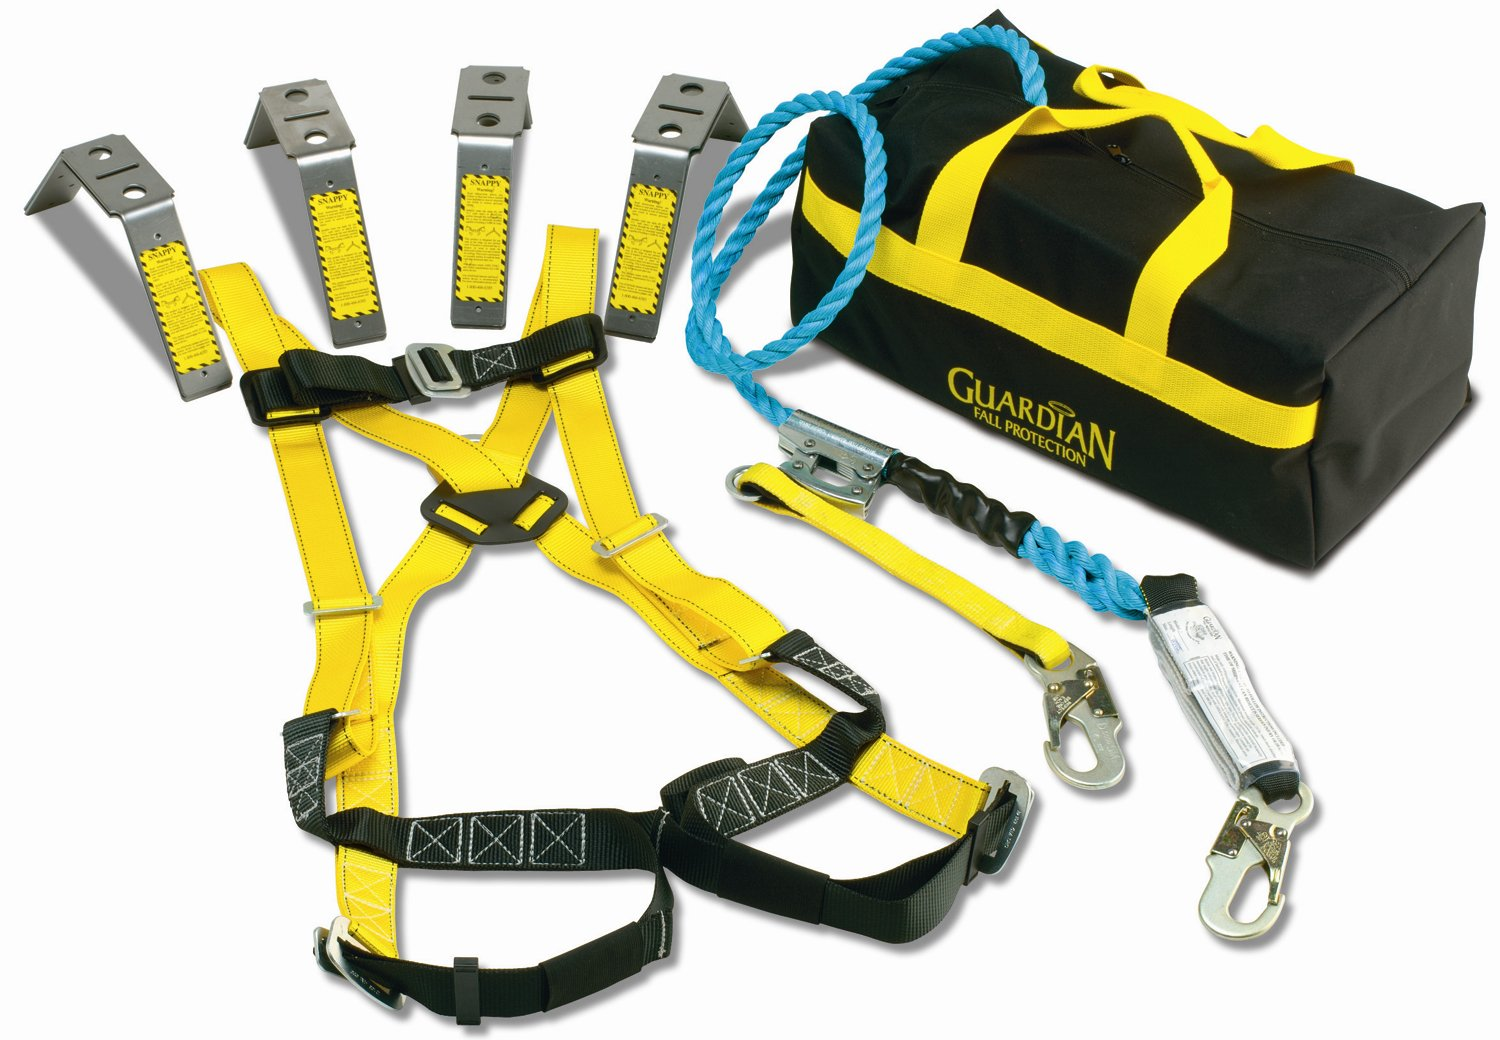 Guardian Fall Protection 00737 Premium Roofer's Kit with 50-Foot Rope, HUV, G-Back Pad, SOS-Bag and 00482 guardian